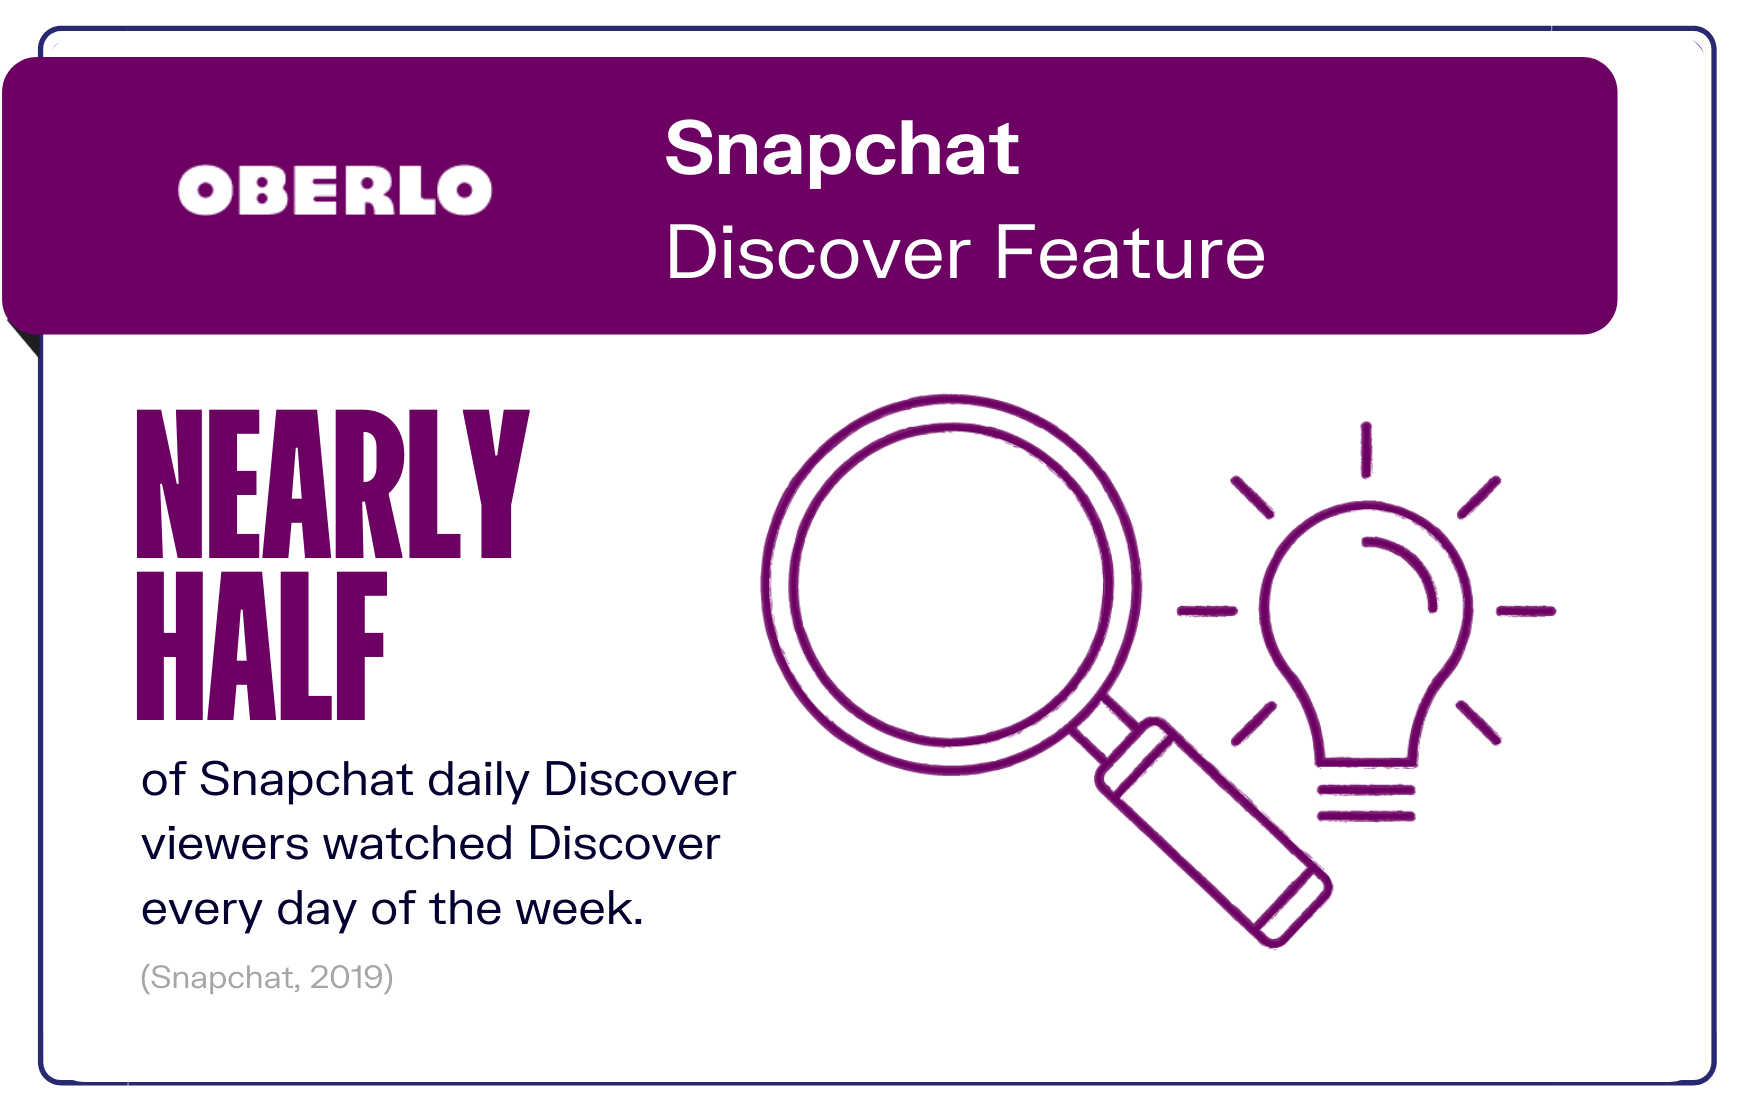 Snapchat Discover Feature graphic